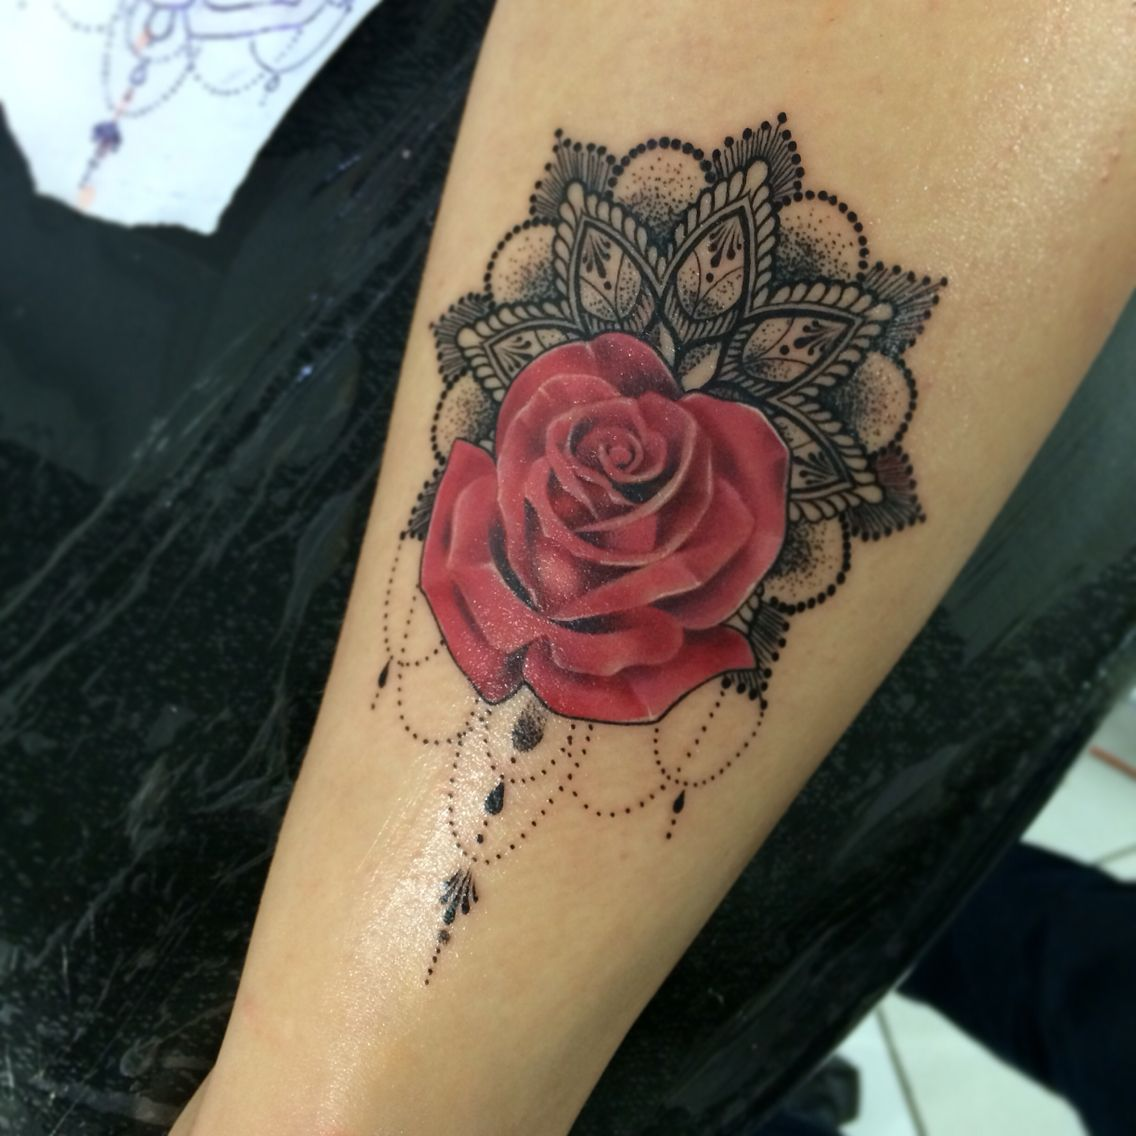 Tattoo Rose Mandala Tatouage Flotte Tatoveringer Tatoveringer